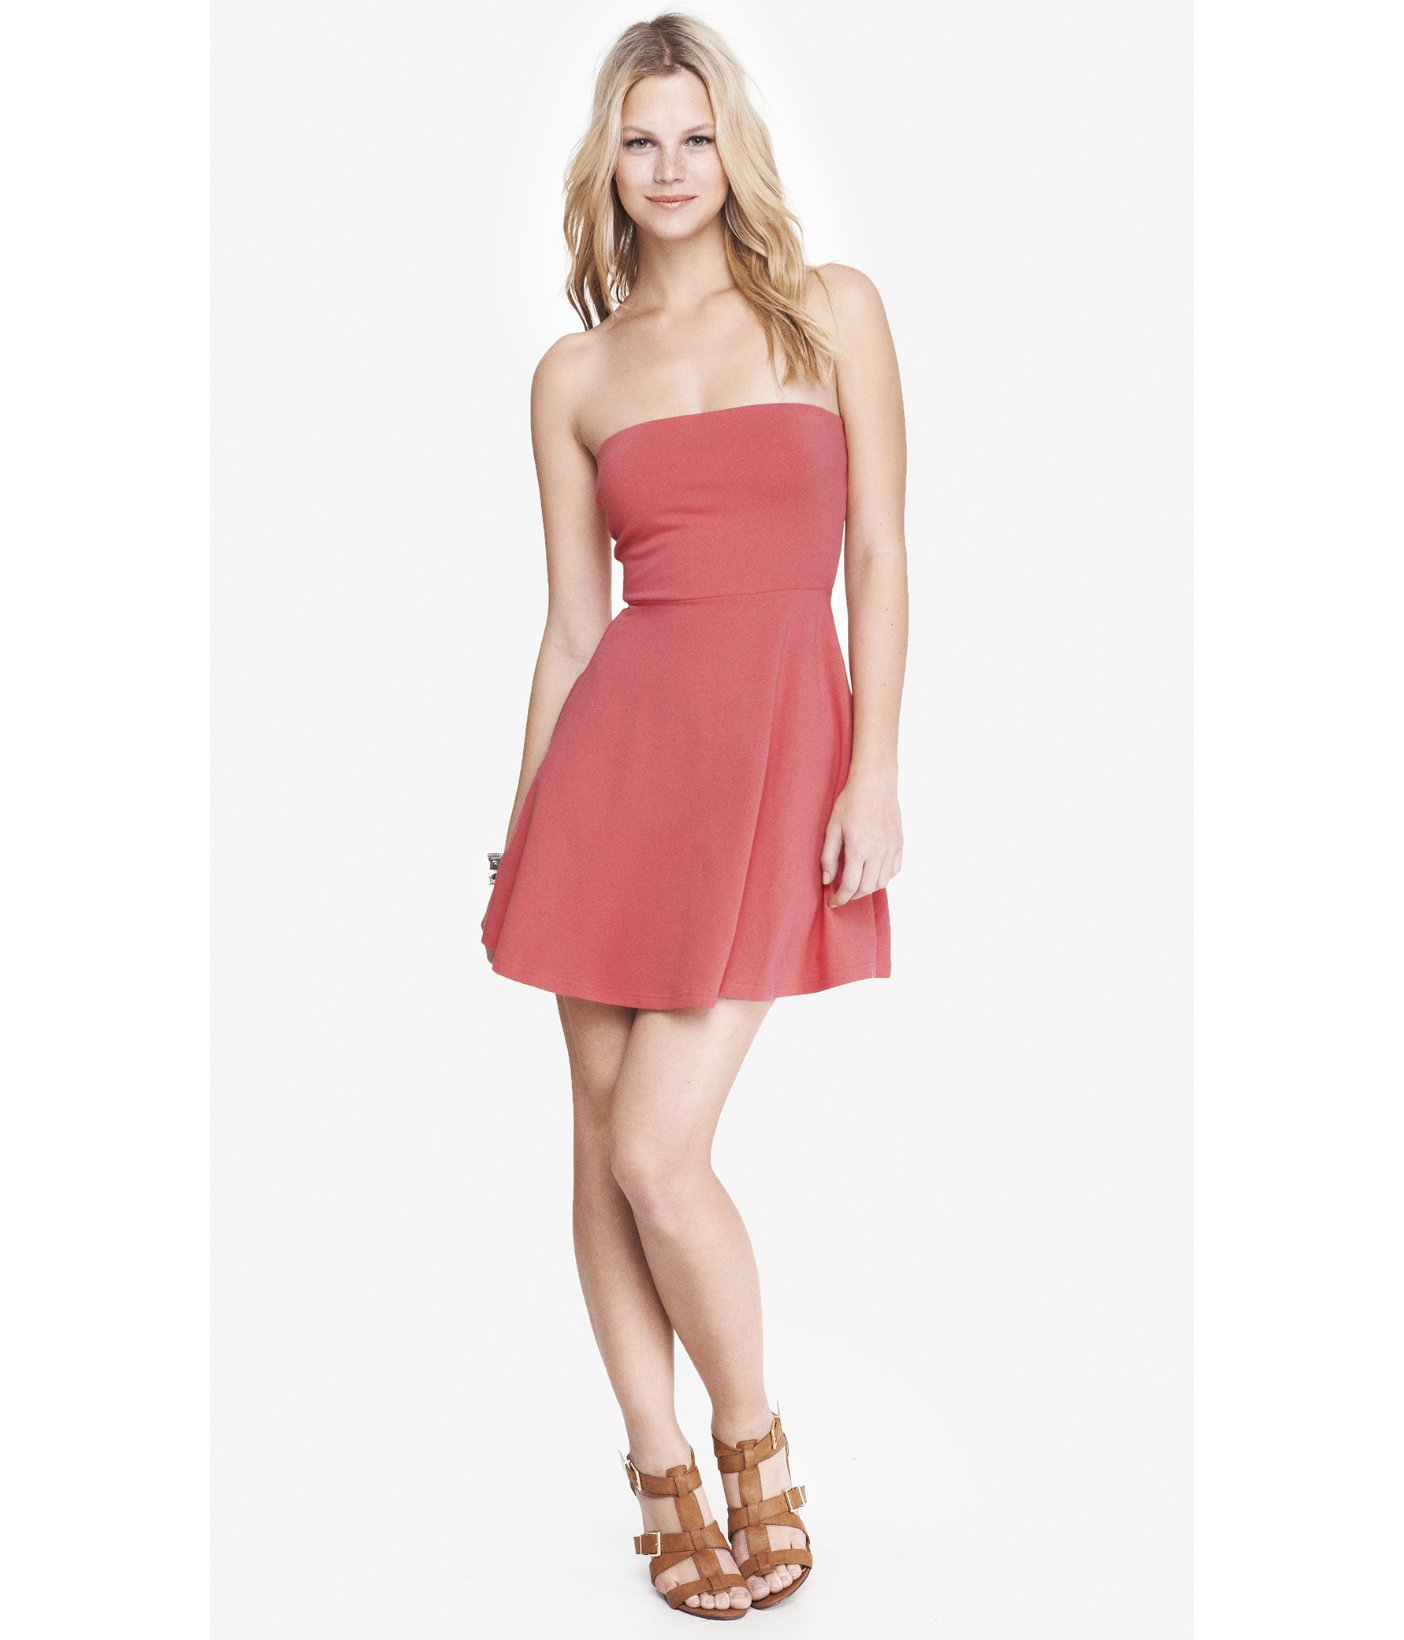 ec1566b3584c Lyst - Express Coral Strapless Skater Dress in Pink